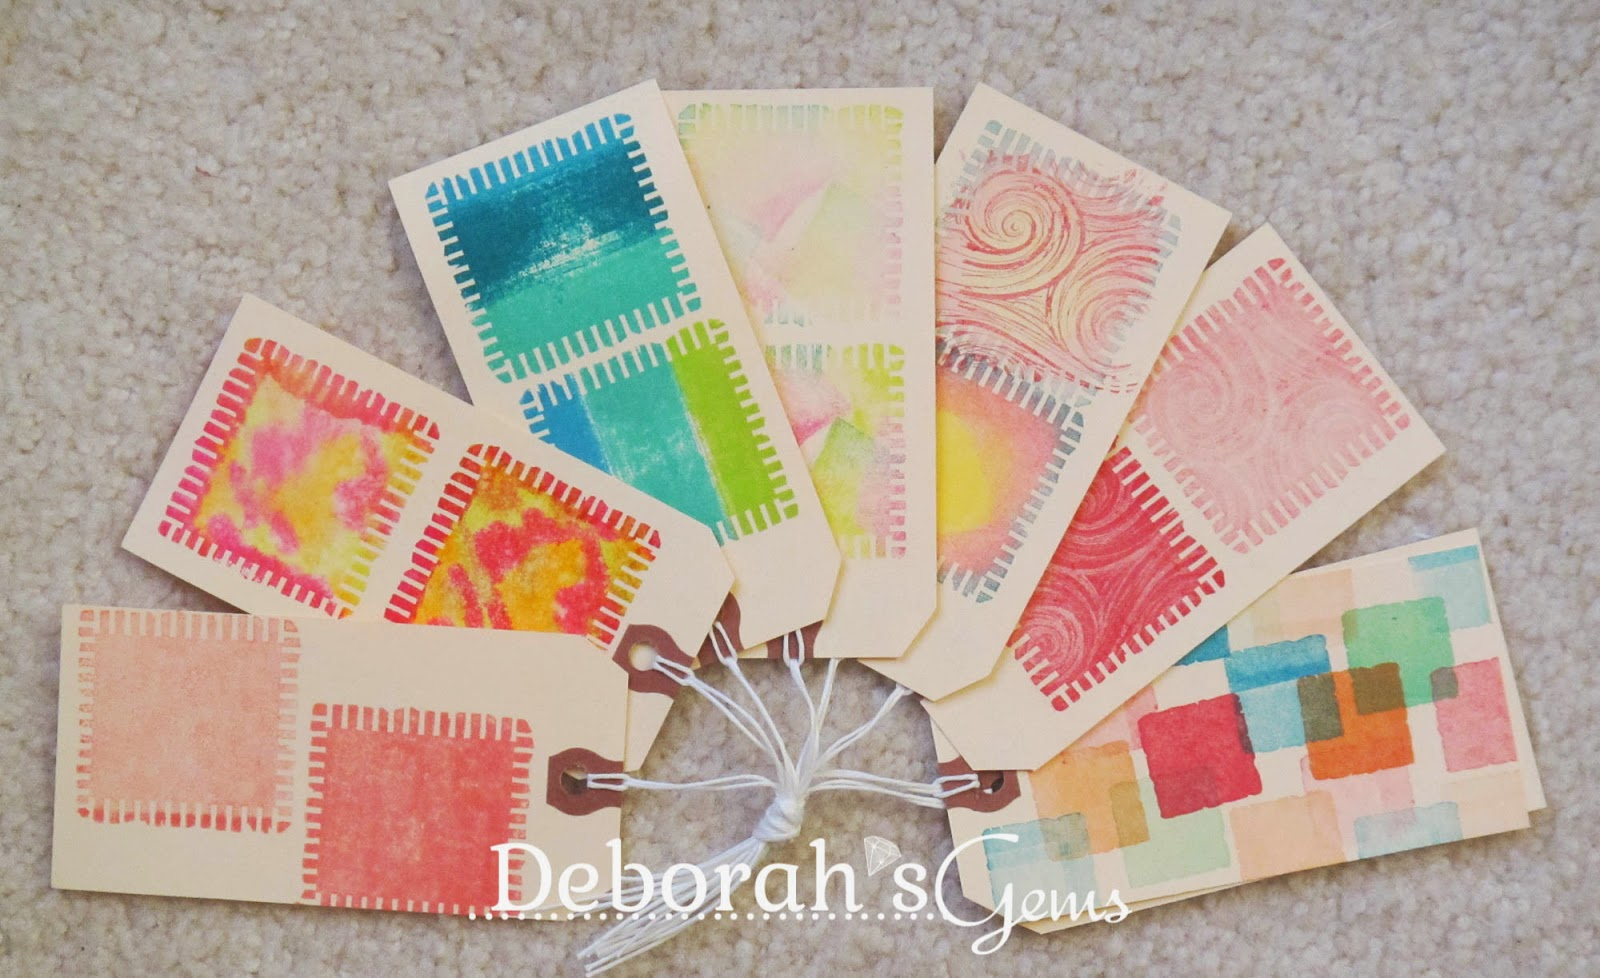 Shadow Tags - photo by Deborah Frings - Deborah's Gems